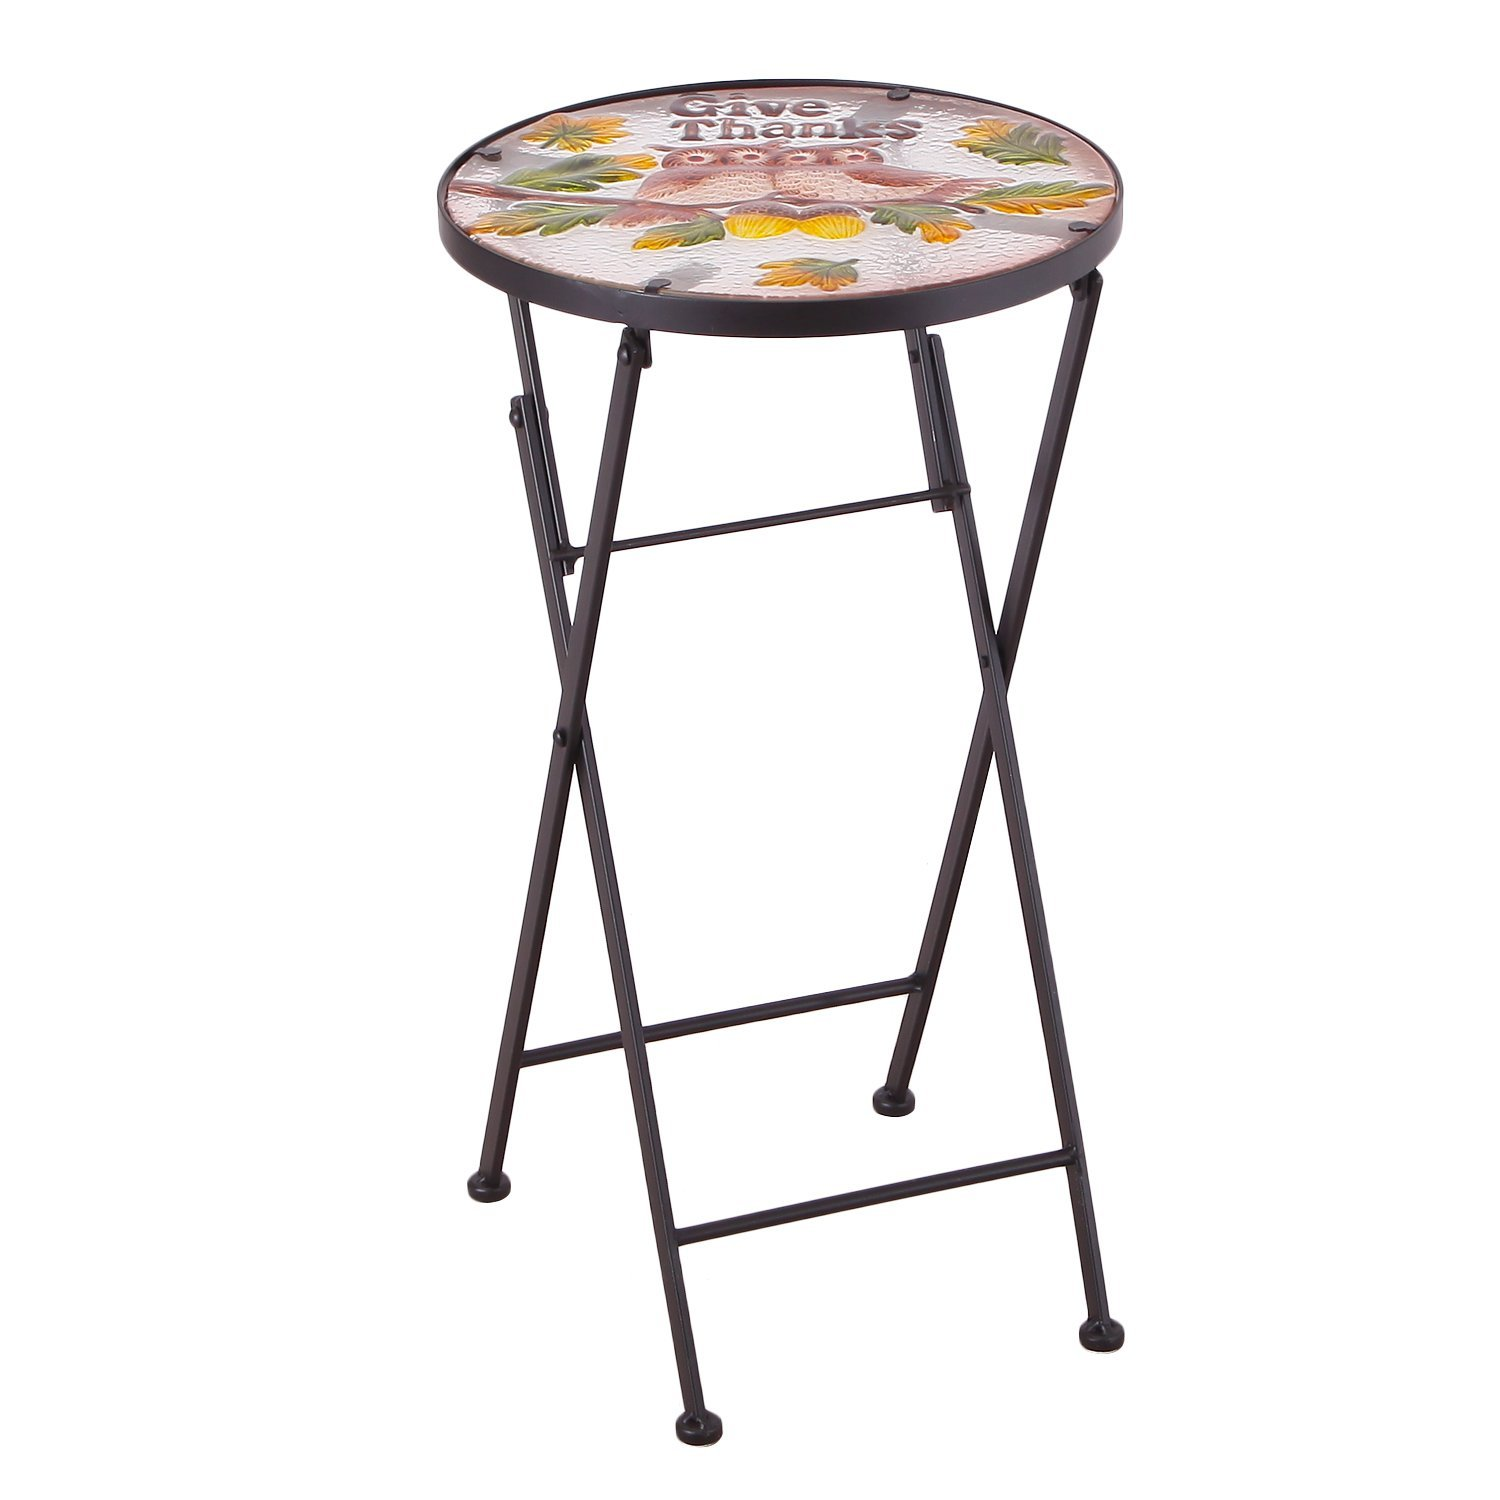 homebeez outdoor indoor foldable plant stand top round folding accent table side end for couple owes garden reclaimed wood trestle dining hollywood glam furniture dinner placemats